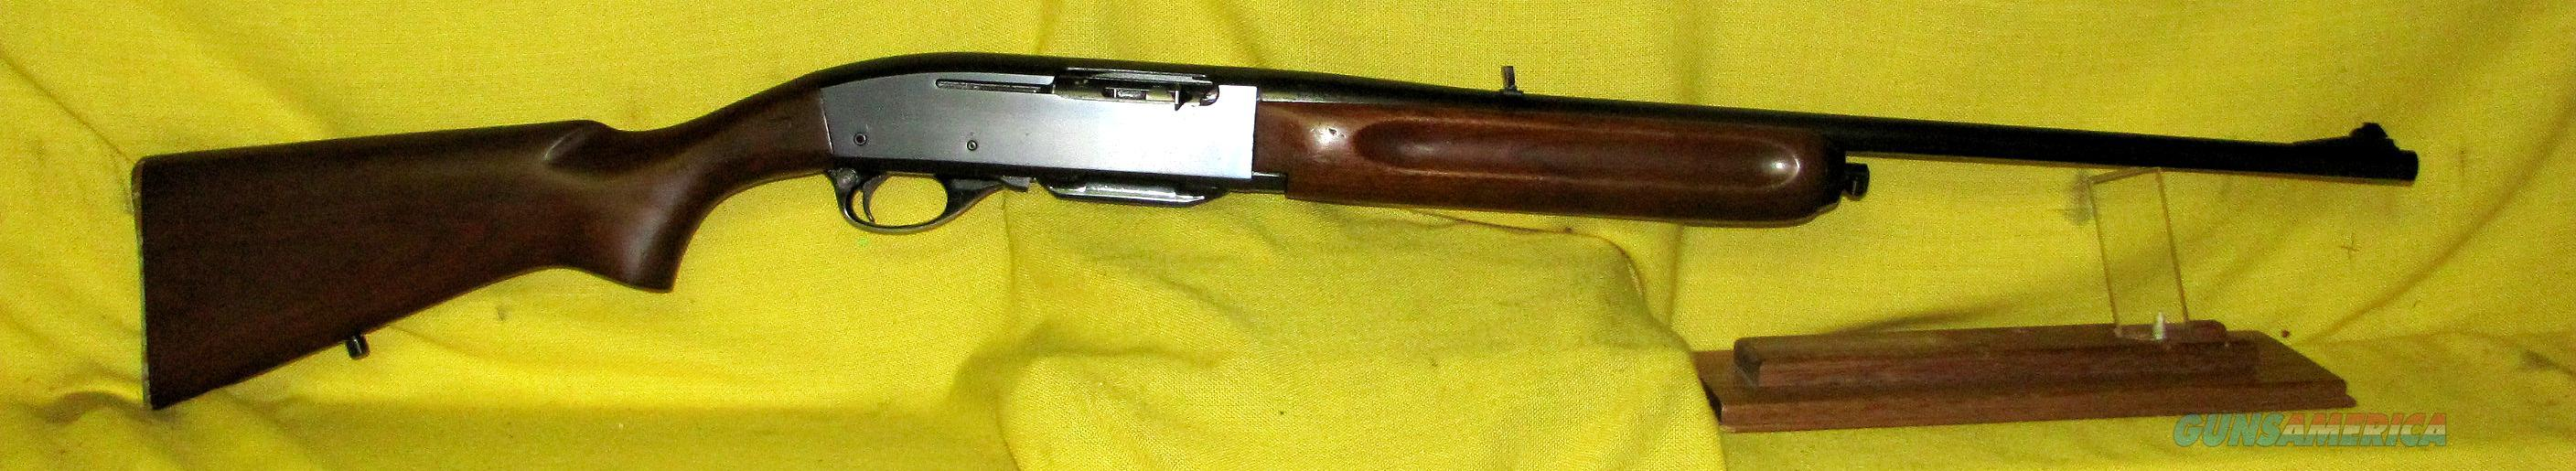 REMINGTON 740 WOODMASTER  Guns > Rifles > Remington Rifles - Modern > Other